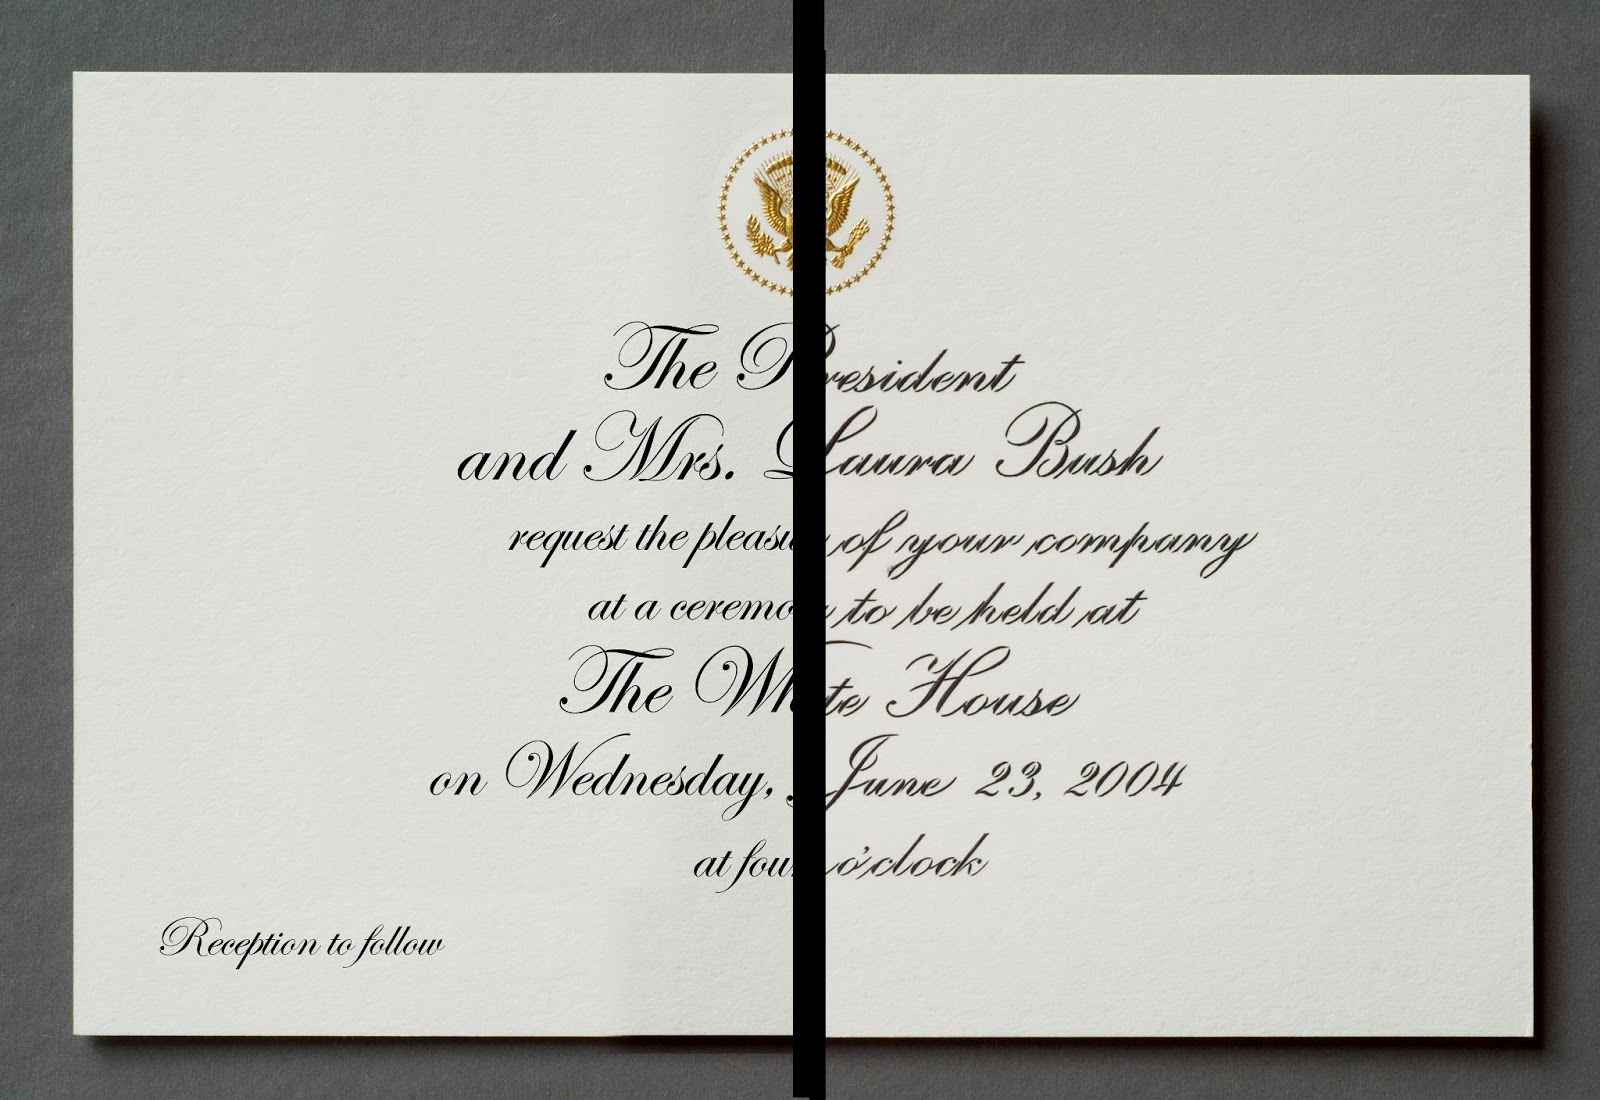 White house calligraphy paperwhite studio white house calligraphy kristyandbryce Image collections